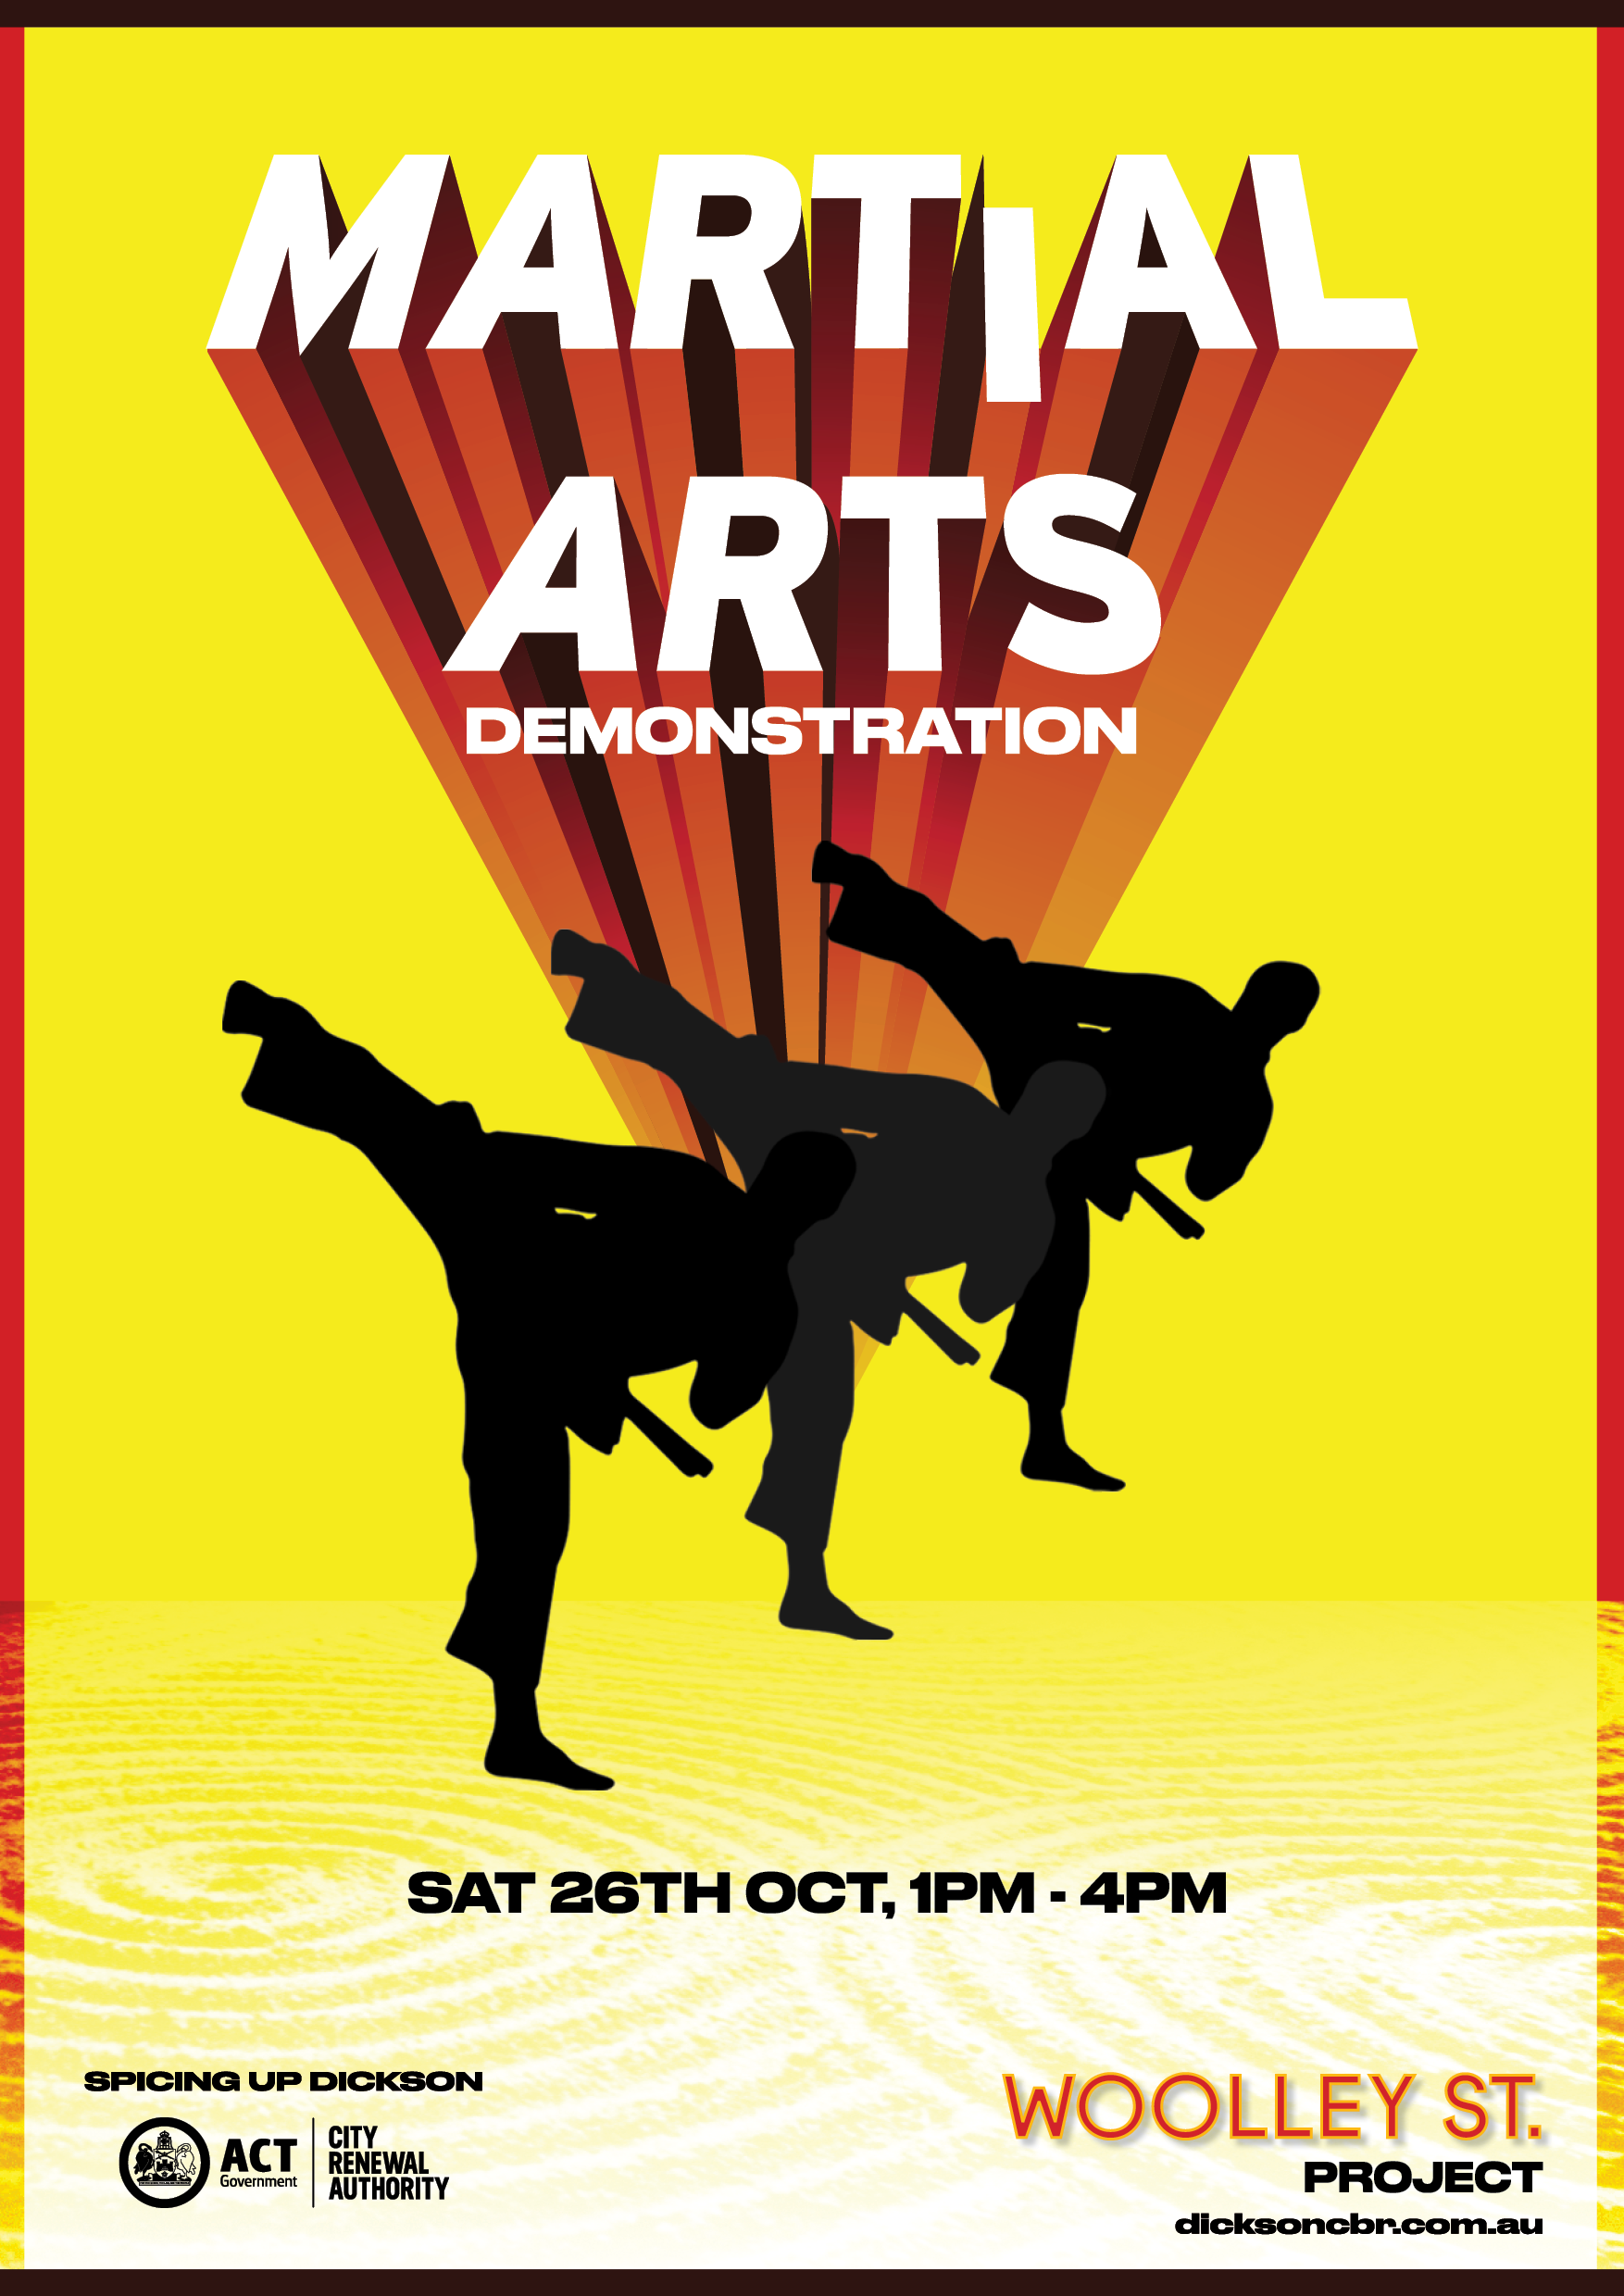 poster promoting martial arts